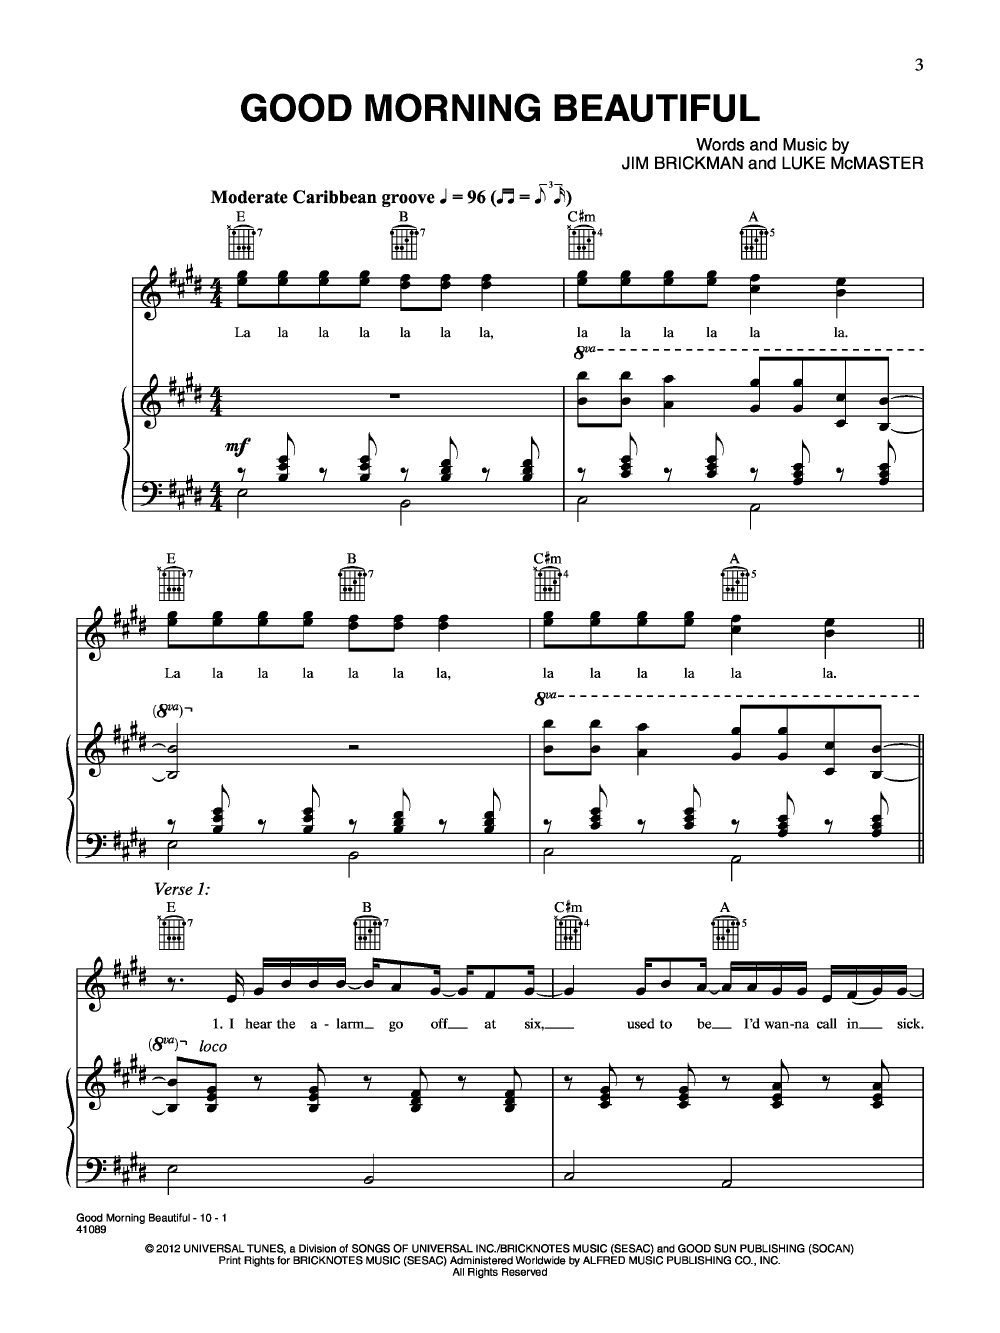 Exelent Home Phillip Phillips Chords Piano Pattern Song Chords